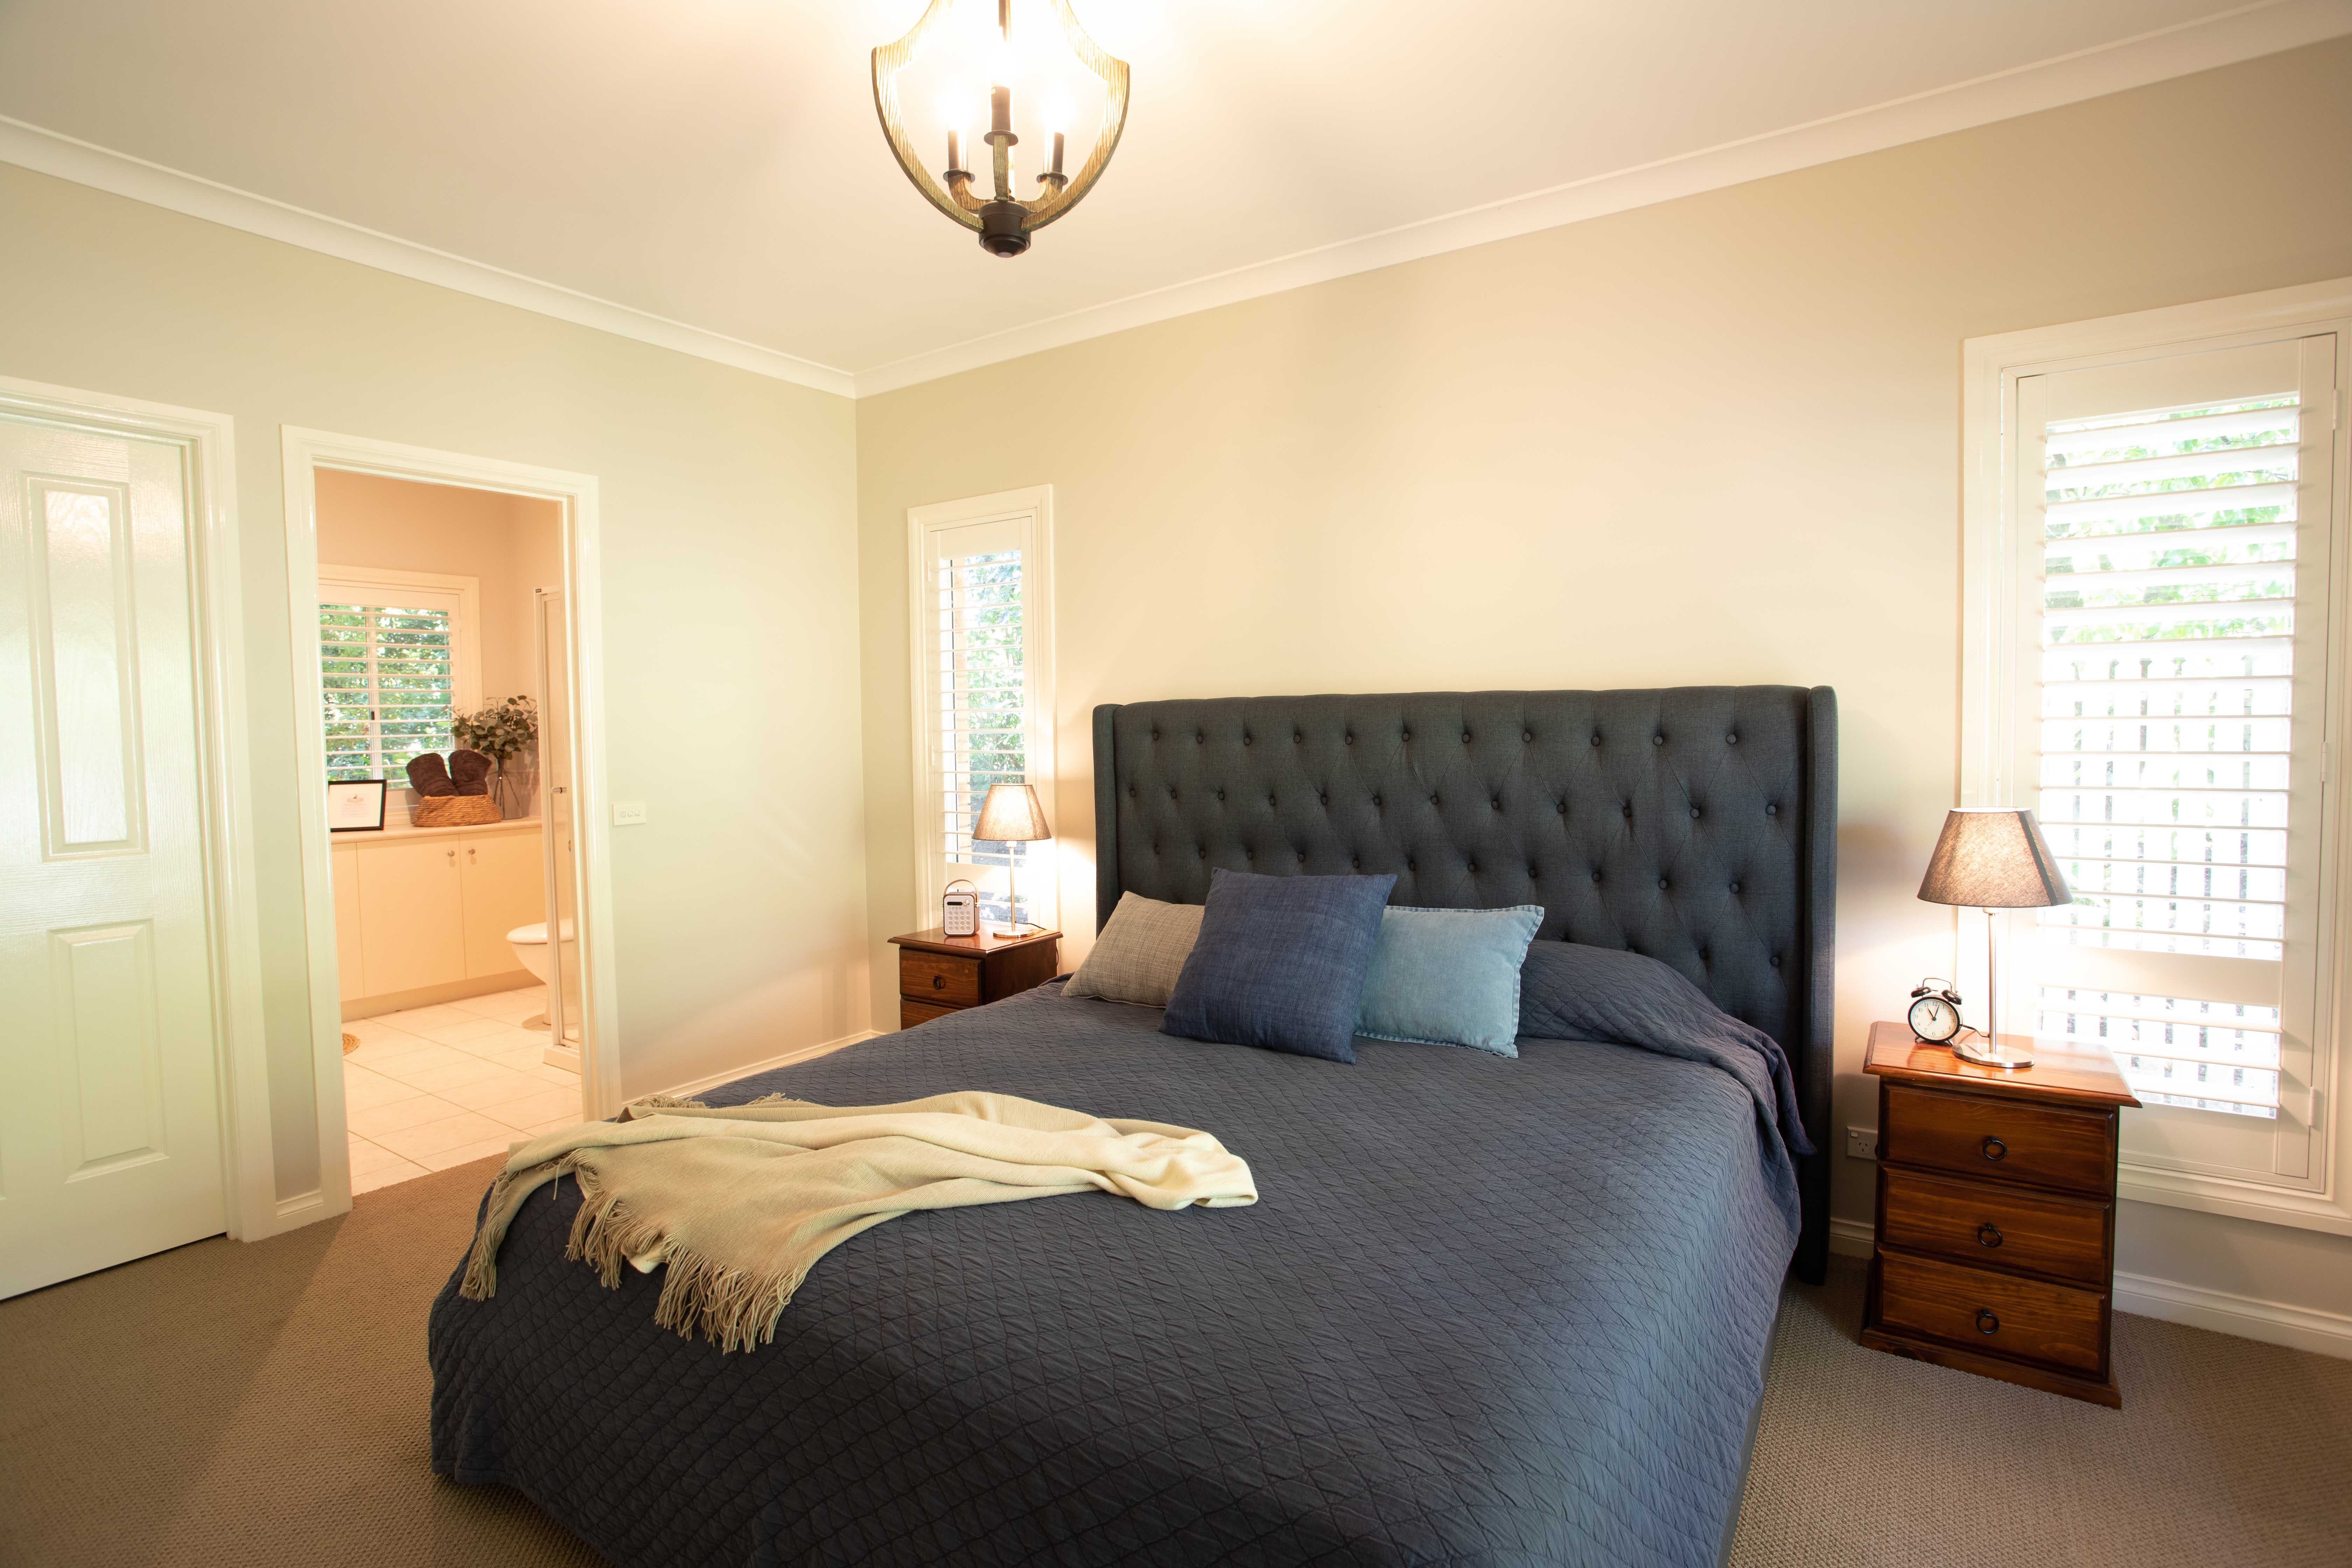 The master bedroom of Gracefield House includes complete ensuite with shower as well as king size bed and views to the garden